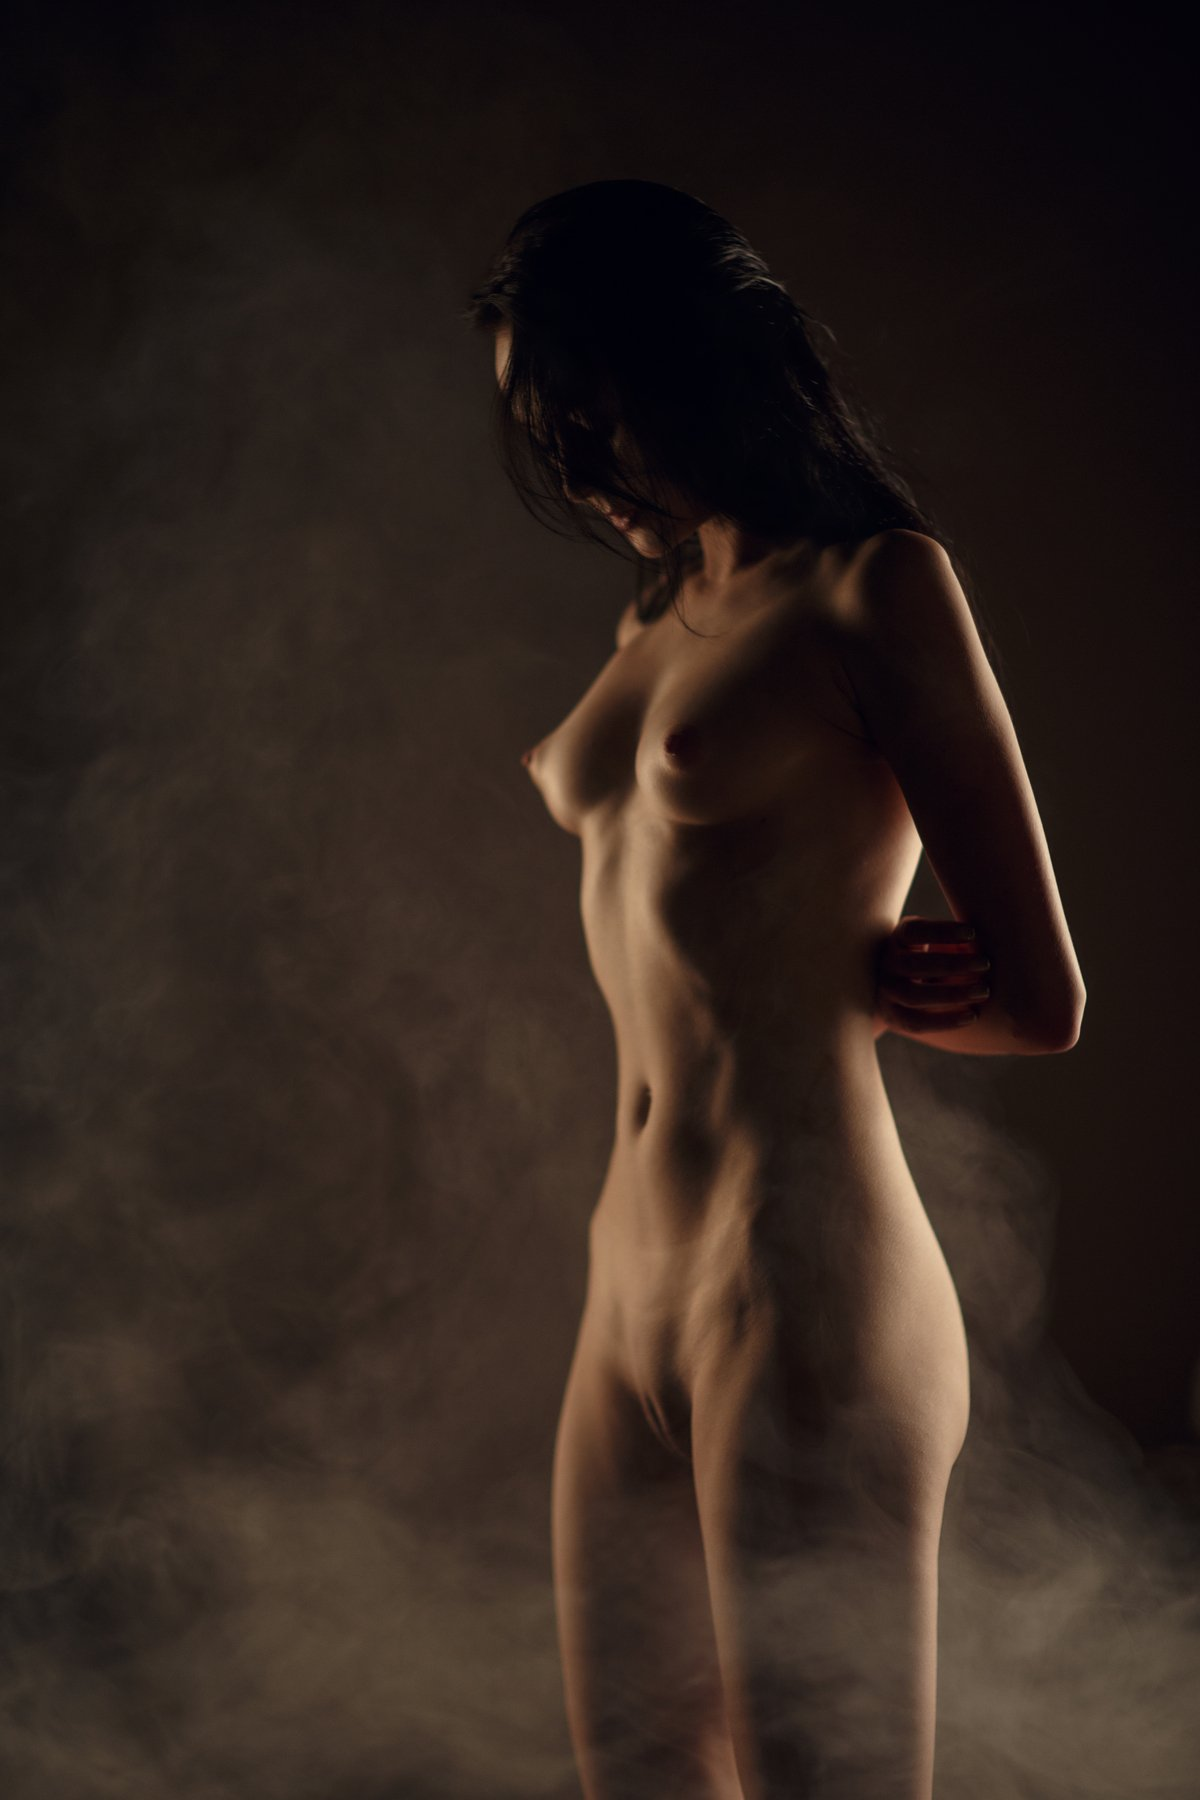 art, artnude, beautiful, girl, light, nu, nude, sexy, studio, sweet, woman, ню, девушка, модель, ню, портрет, portrait, Сергей Сорокин